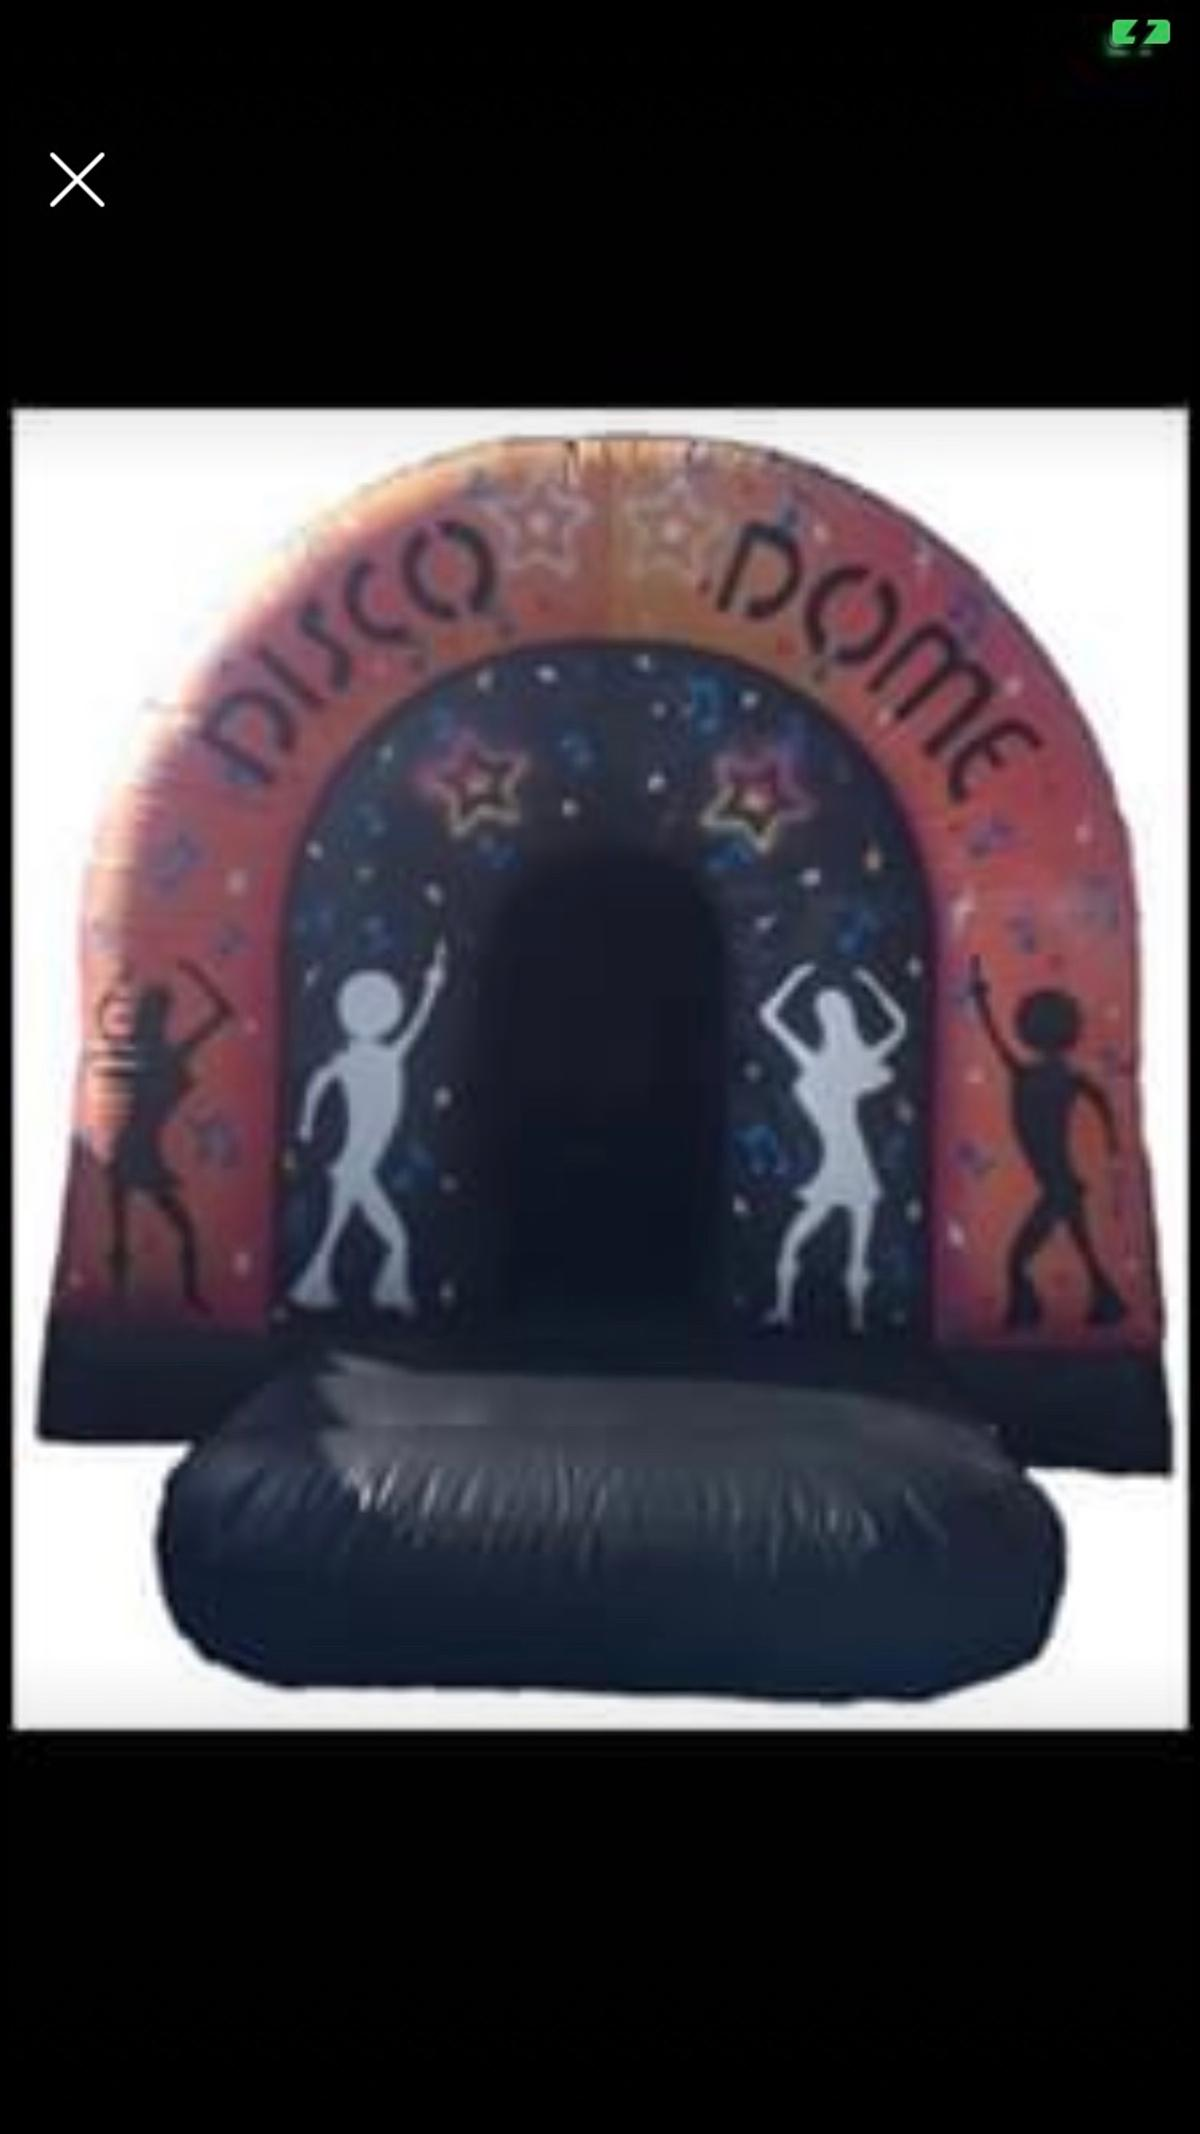 Bouncy castle disco dome comes with blower 1x mat lights music speaker Top castle for party's 15x15 ft approx no silly offers collection only thank you